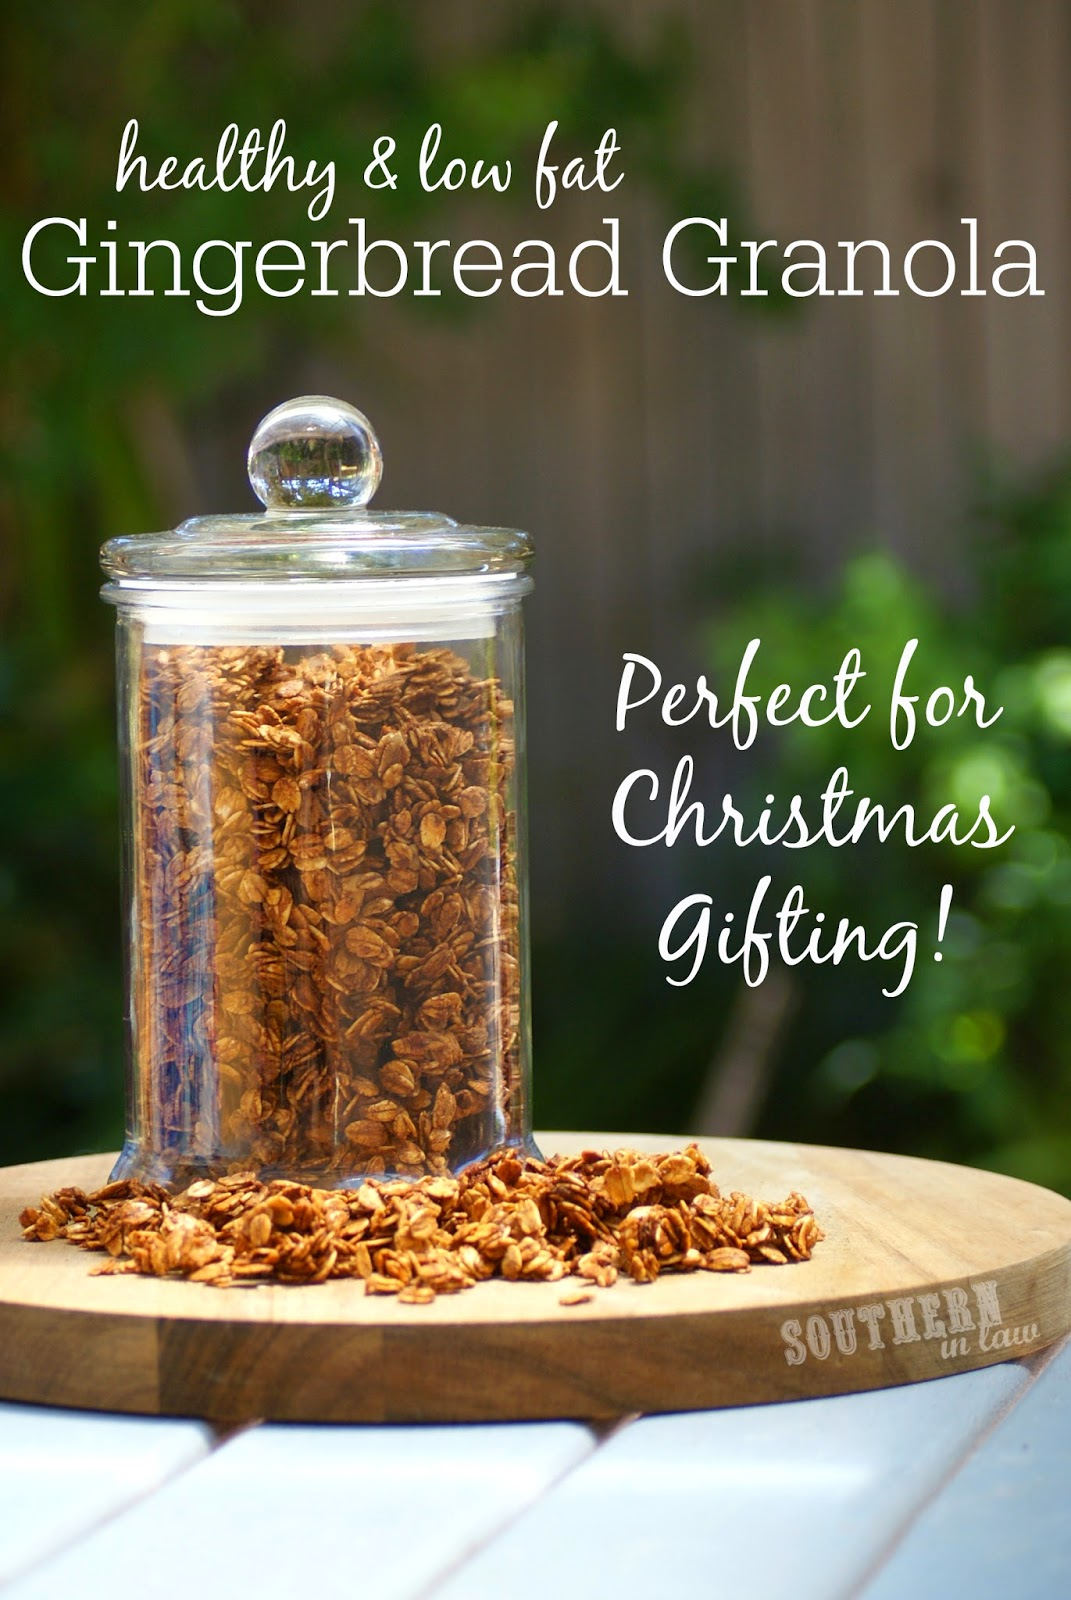 Healthy and Low Fat Gingerbread Granola Recipe